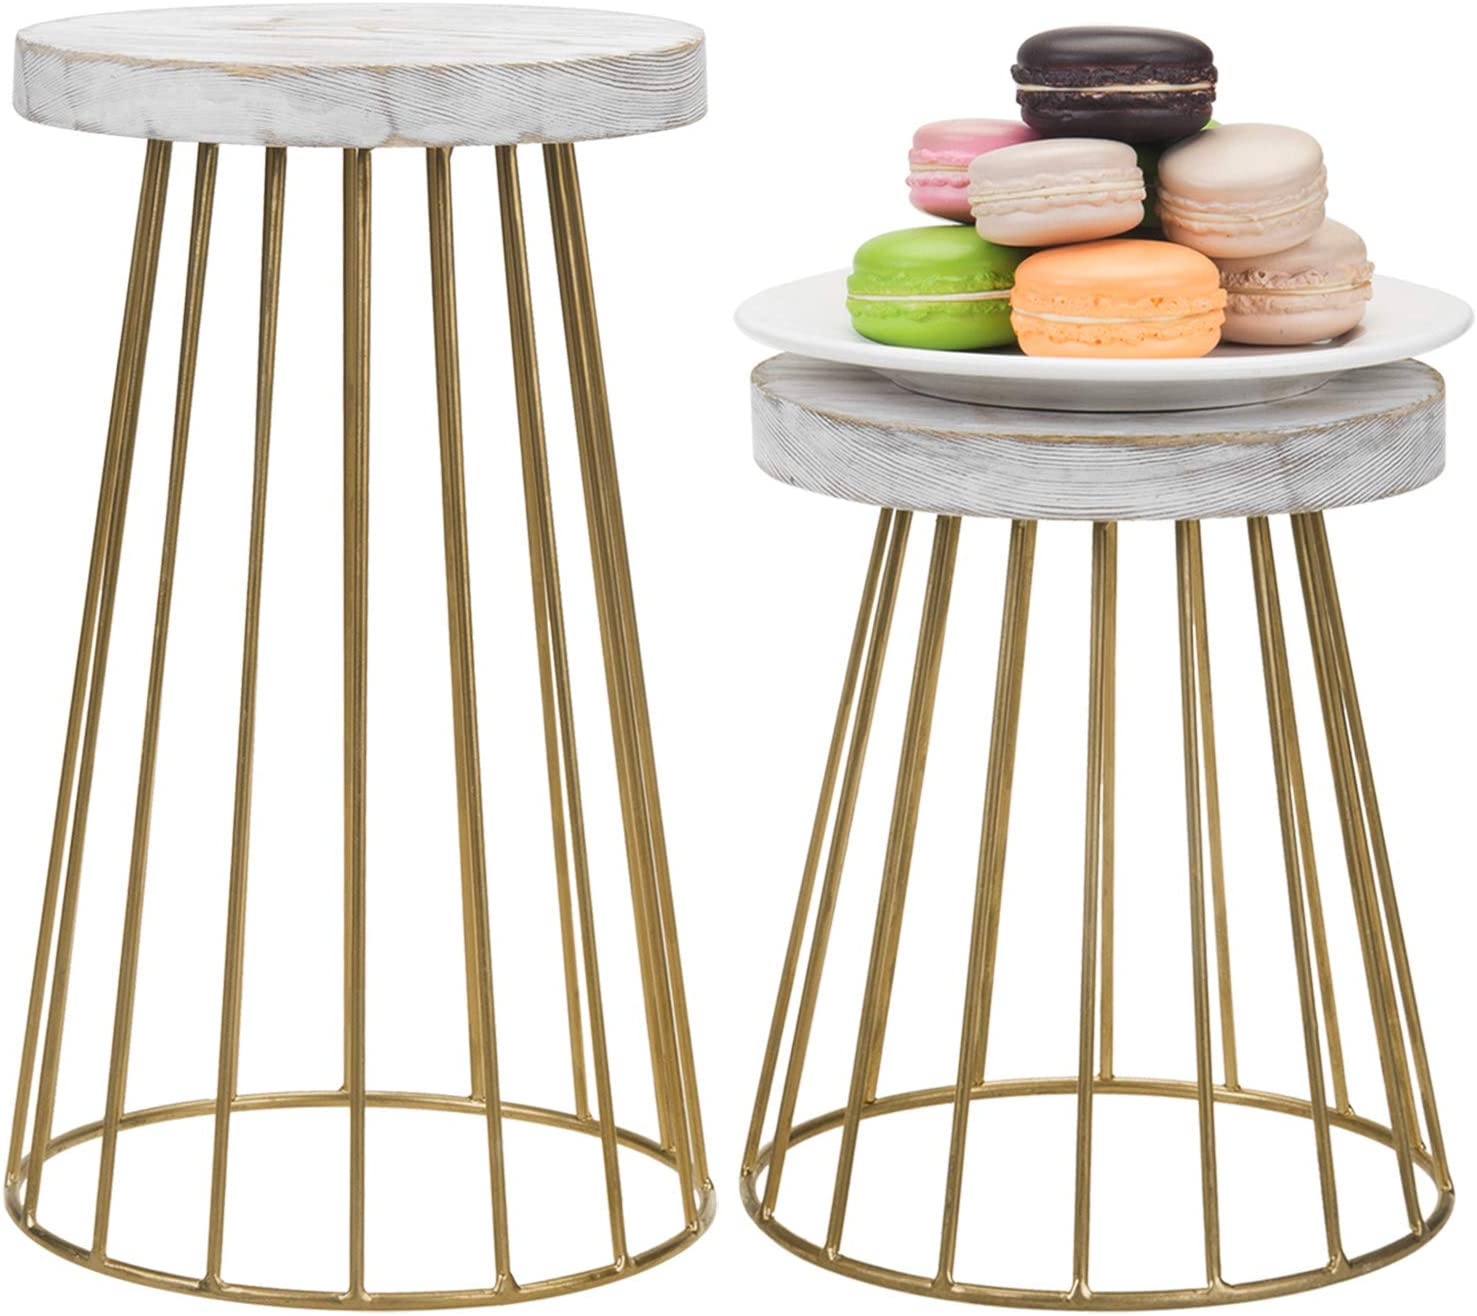 MyGift Vintage Brass Tone Metal & Shabby Whitewashed Wood Pedestal Display Riser Stands, Set of 2